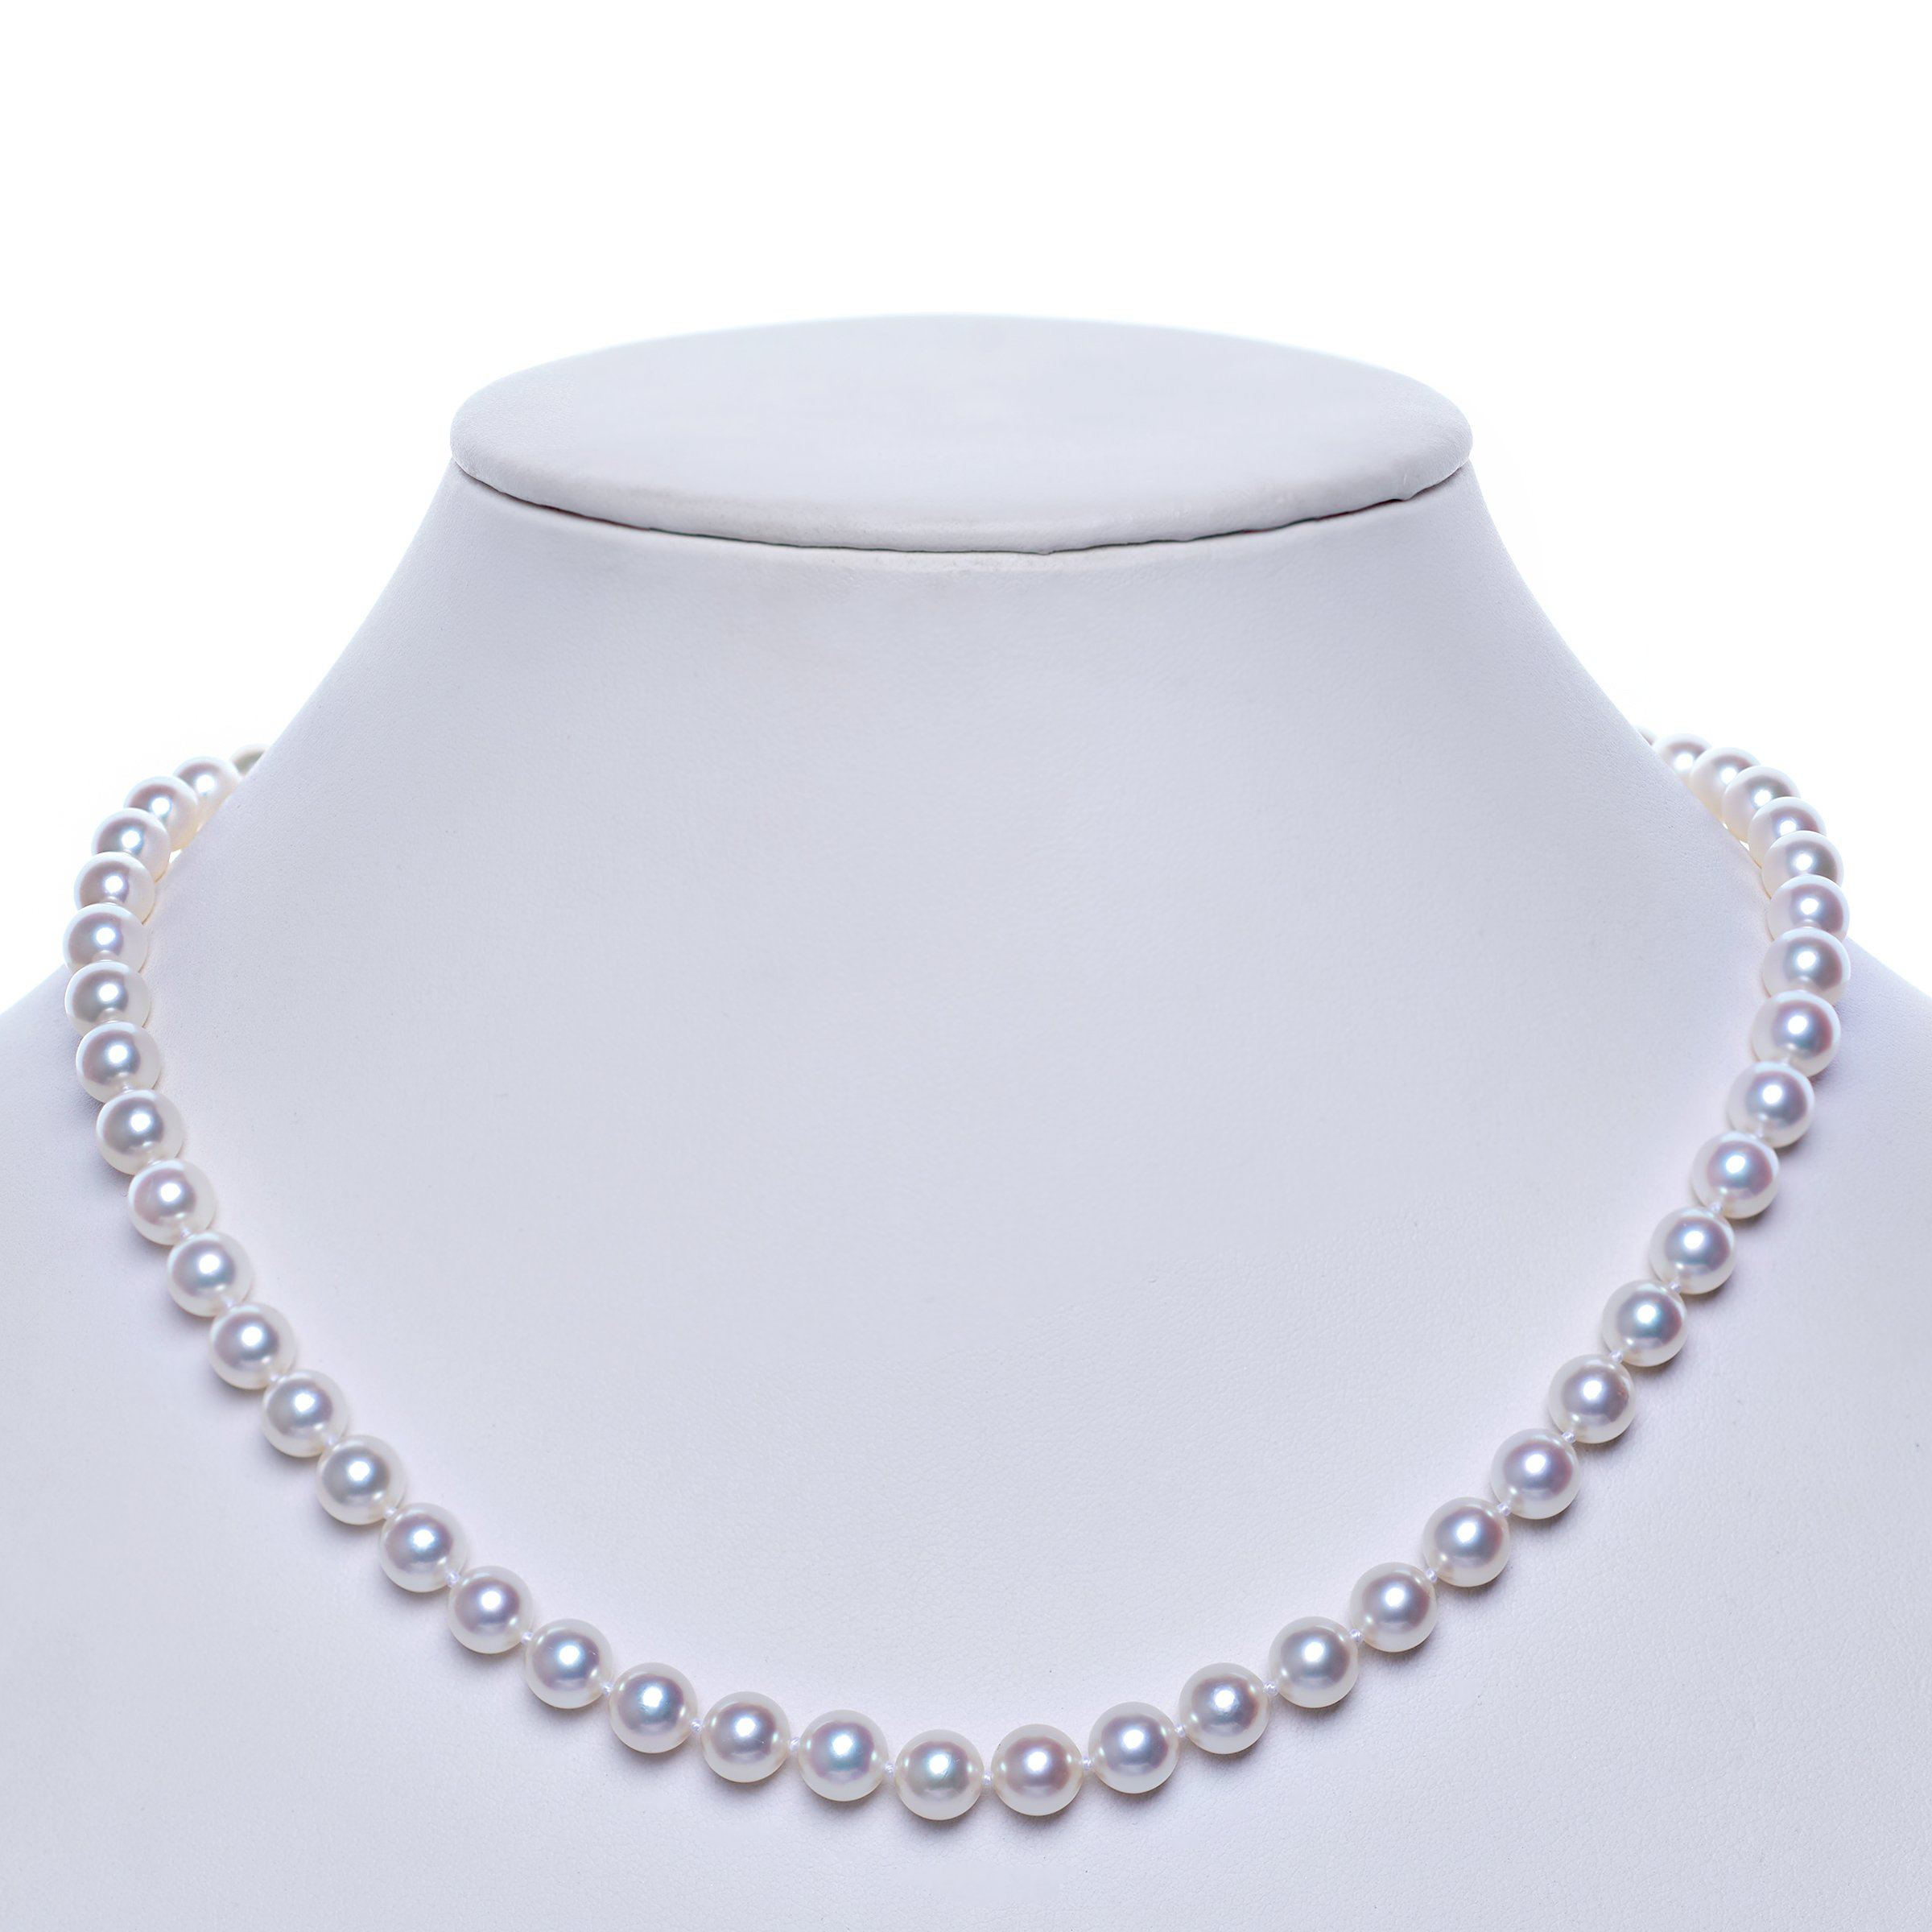 7.5-8.0 mm 18 Inch Natural White Hanadama Akoya Pearl Necklace